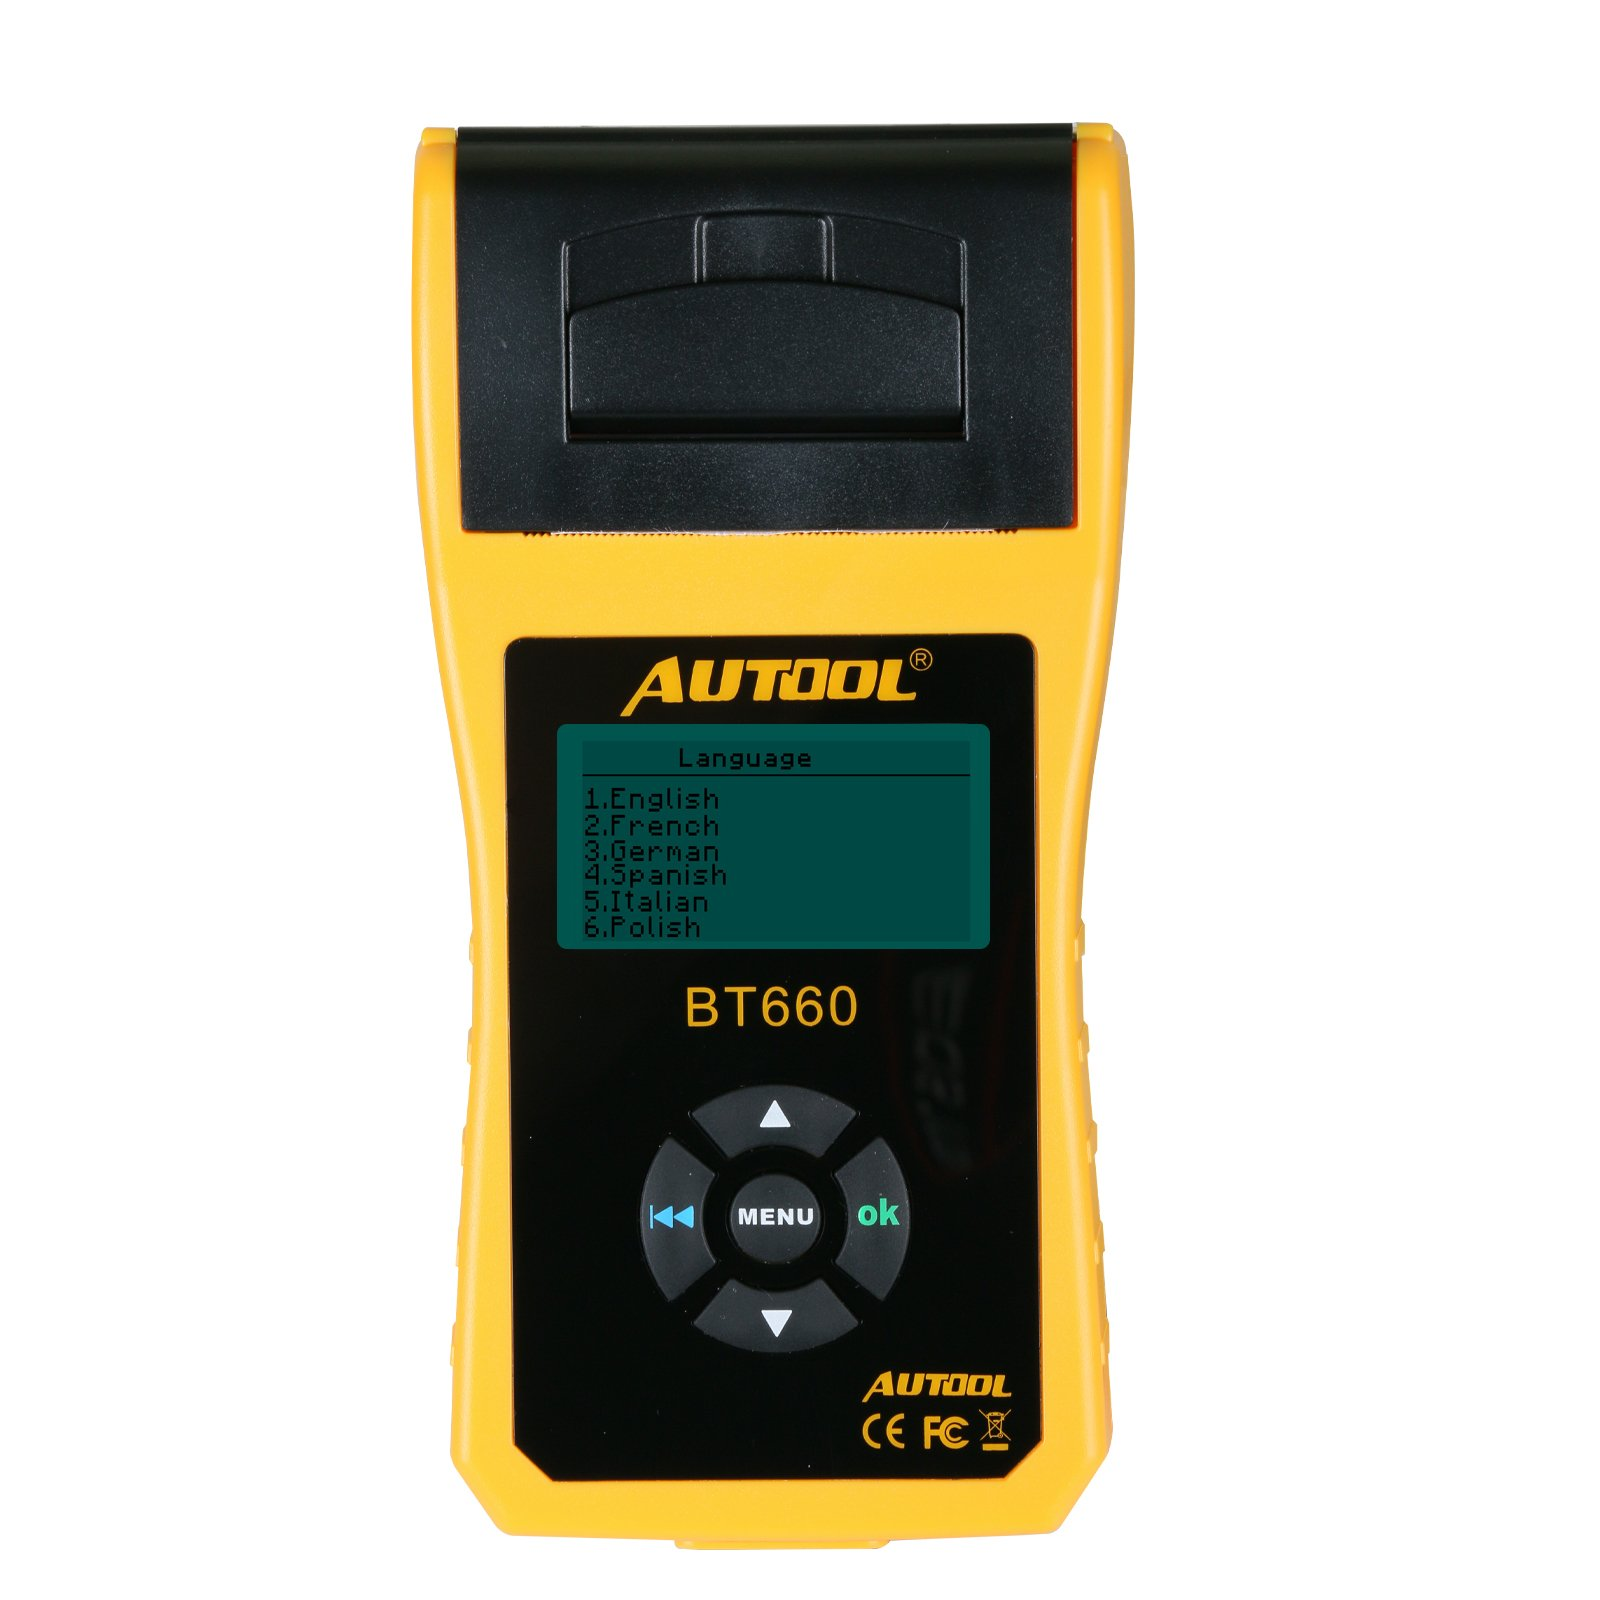 TuLanAuto 12V/24V Autool BT660 Battery Conductance Tester BT-660 Auto Battery Testers Automotive Diagnostic Tools For Heavy Duty Trucks, Light Duty Truck, Cars